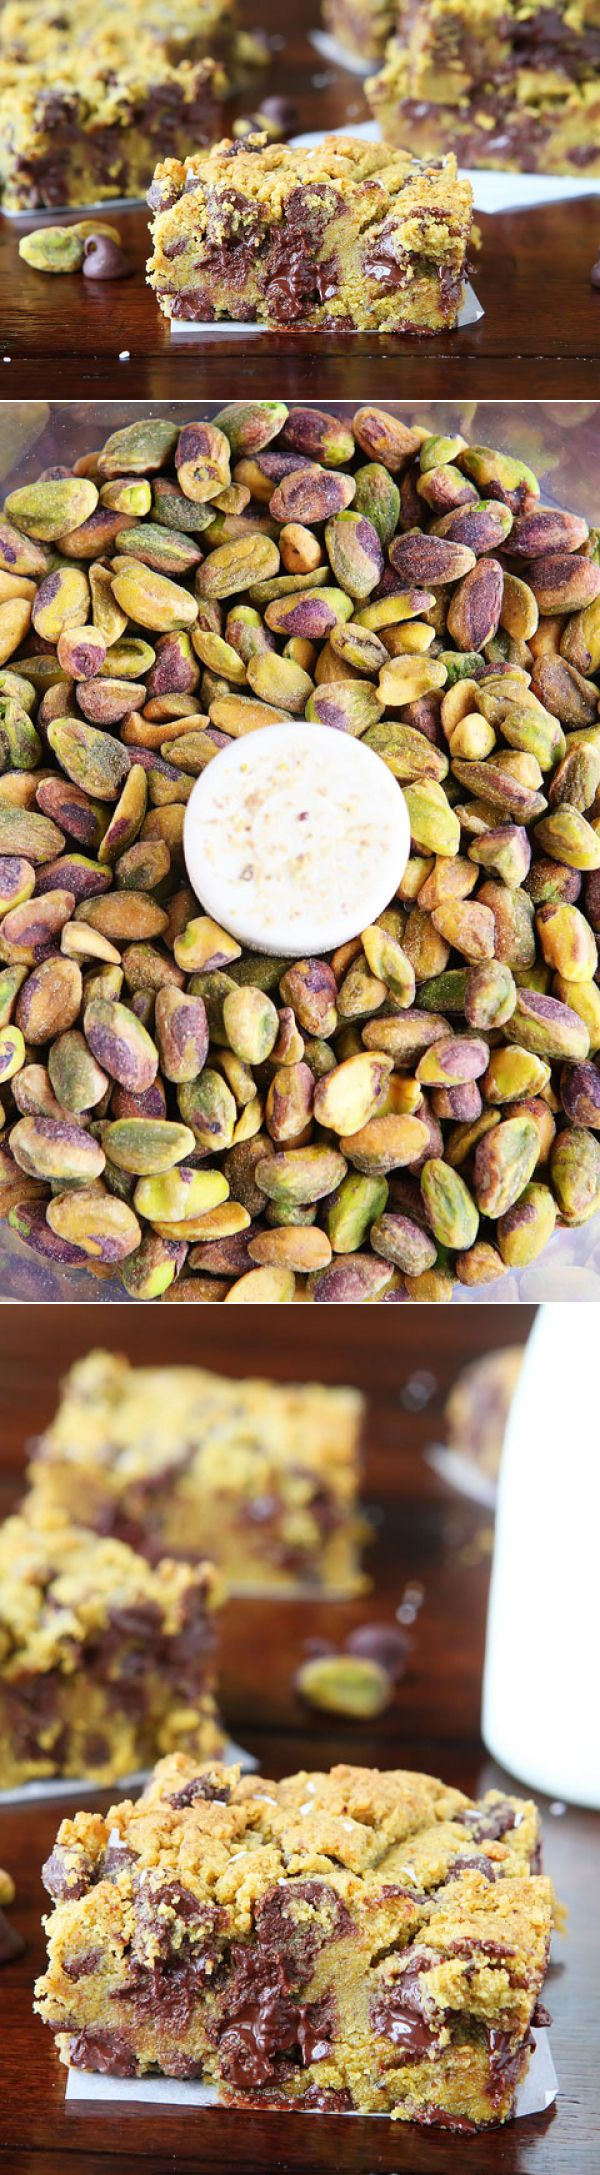 17 Best ideas about Pistachio Cookies on Pinterest ...